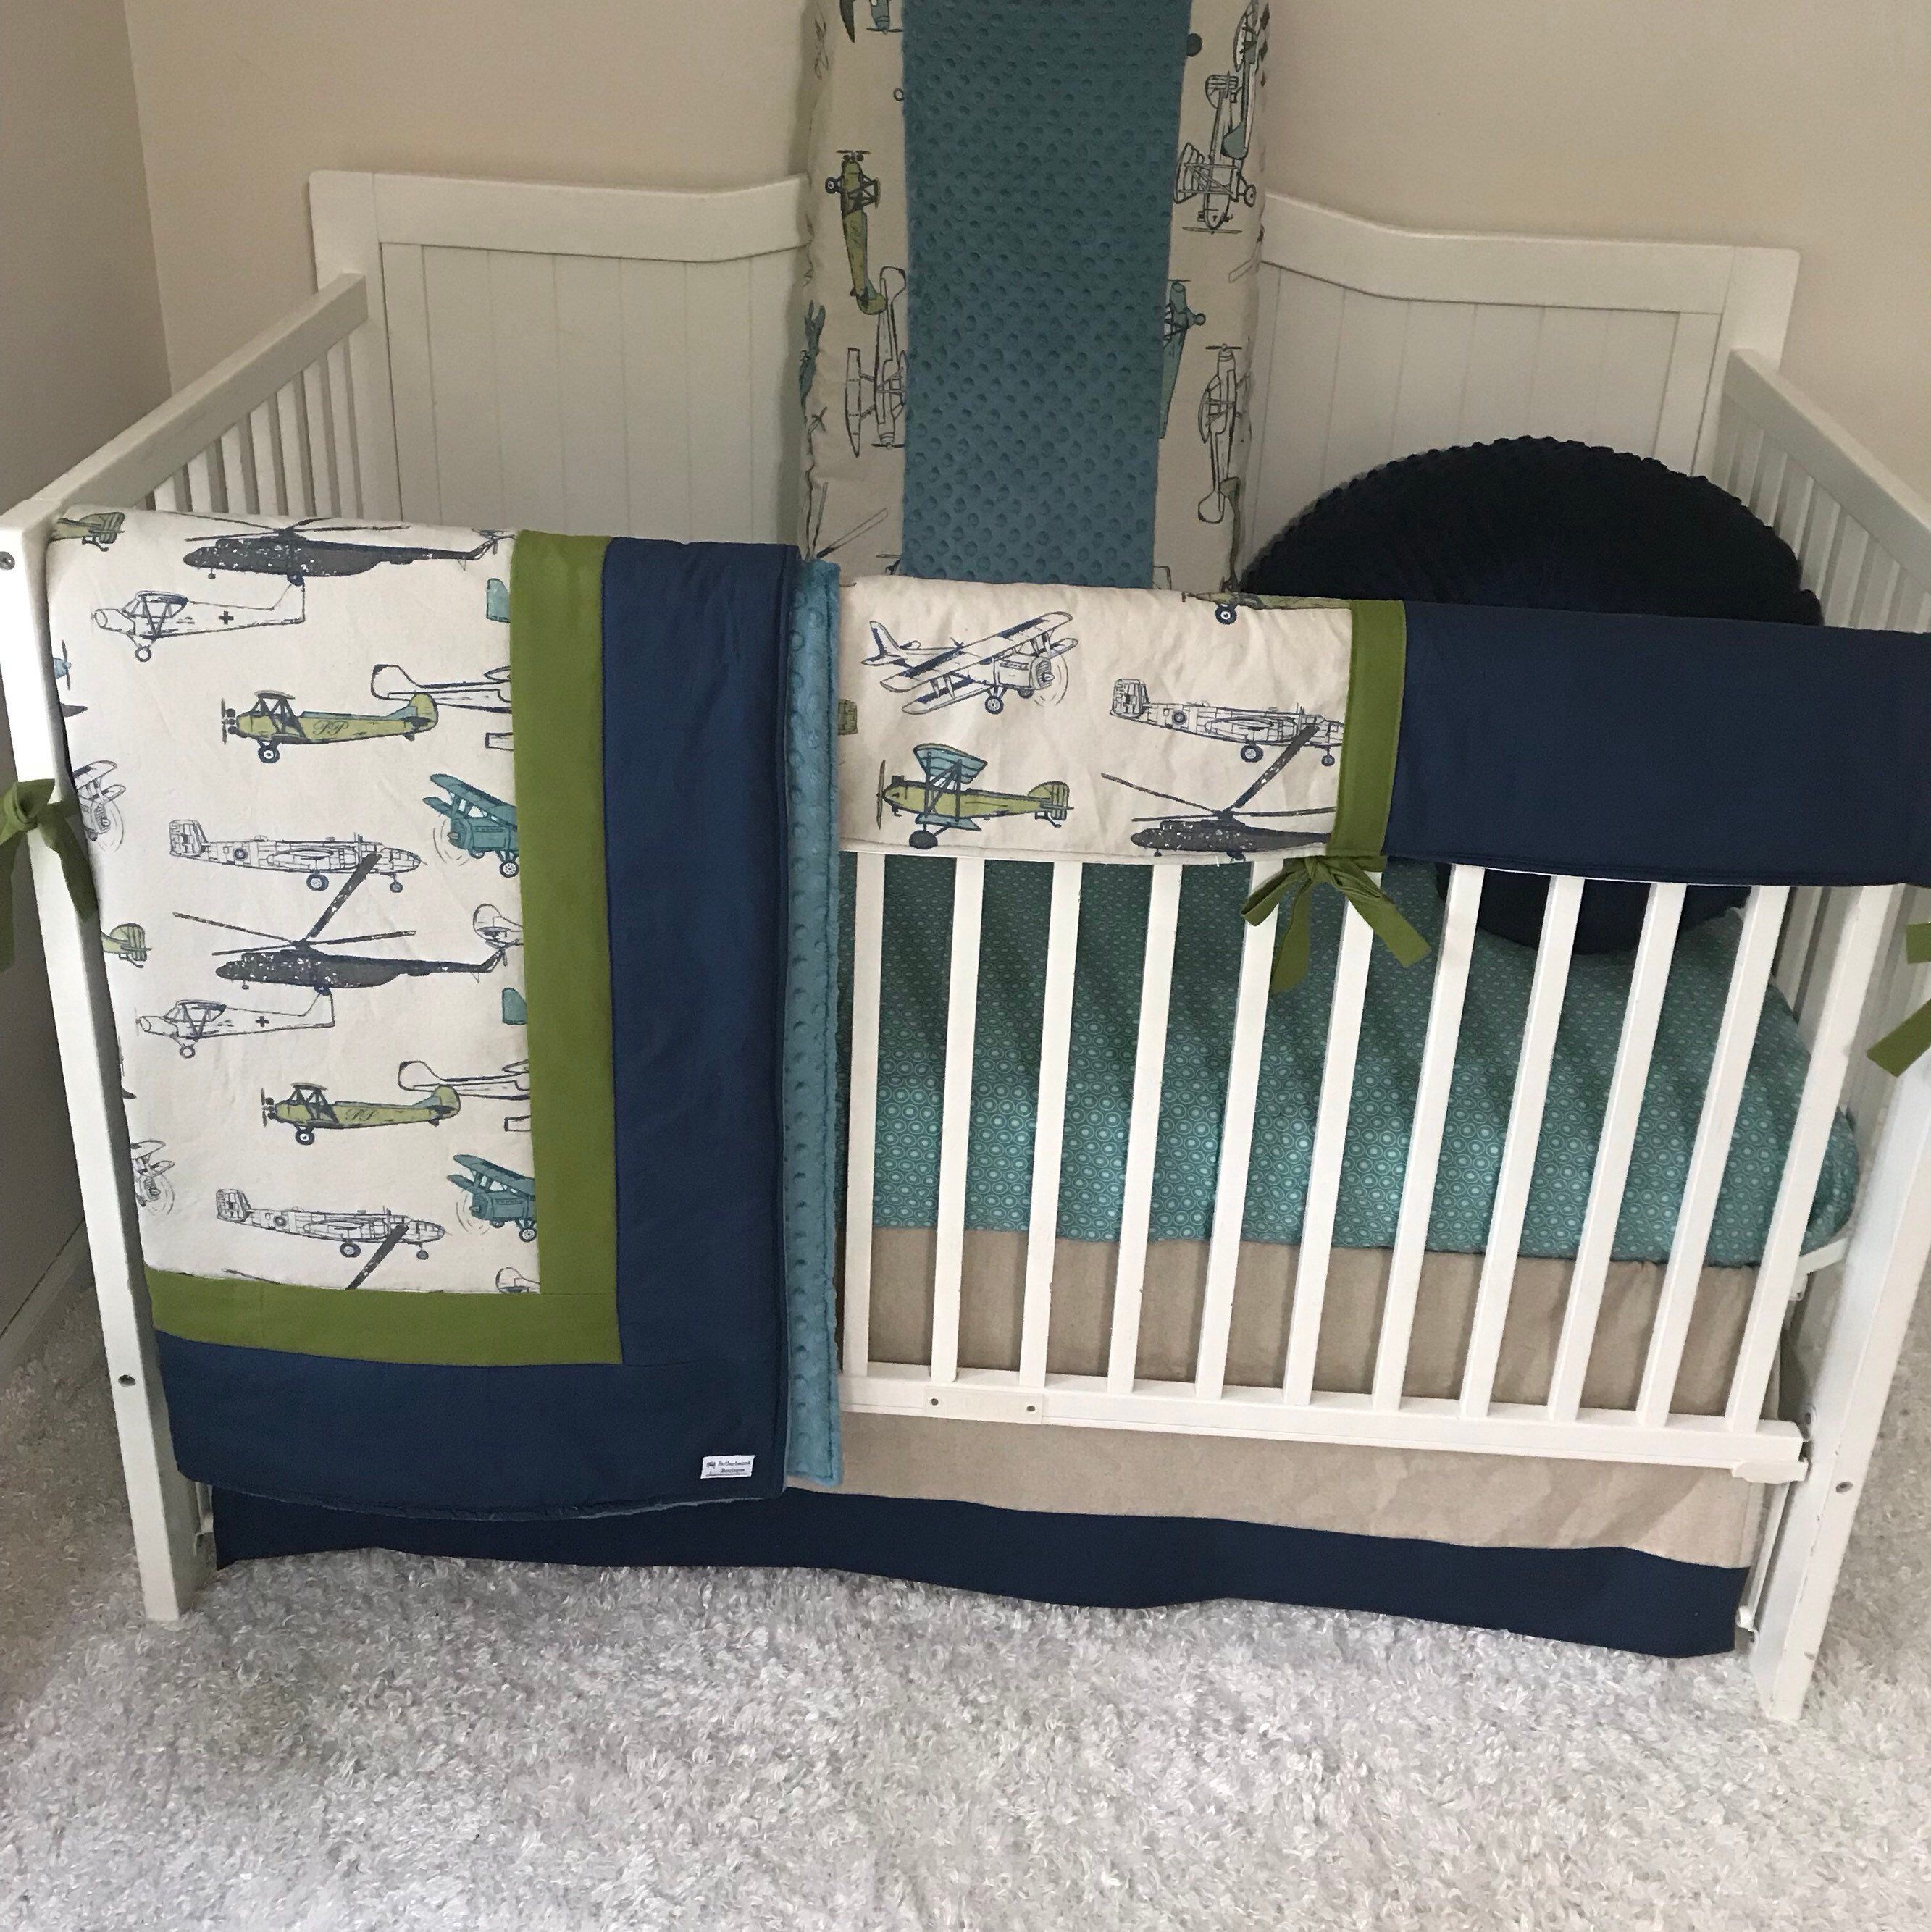 Excited To Share This Item From My Etsy Shop Baby Boy Crib Bedding Set Tan Linen Olive Green Navy Teal Air Airplane Crib Bedding Crib Sets Crib Sets For Boys